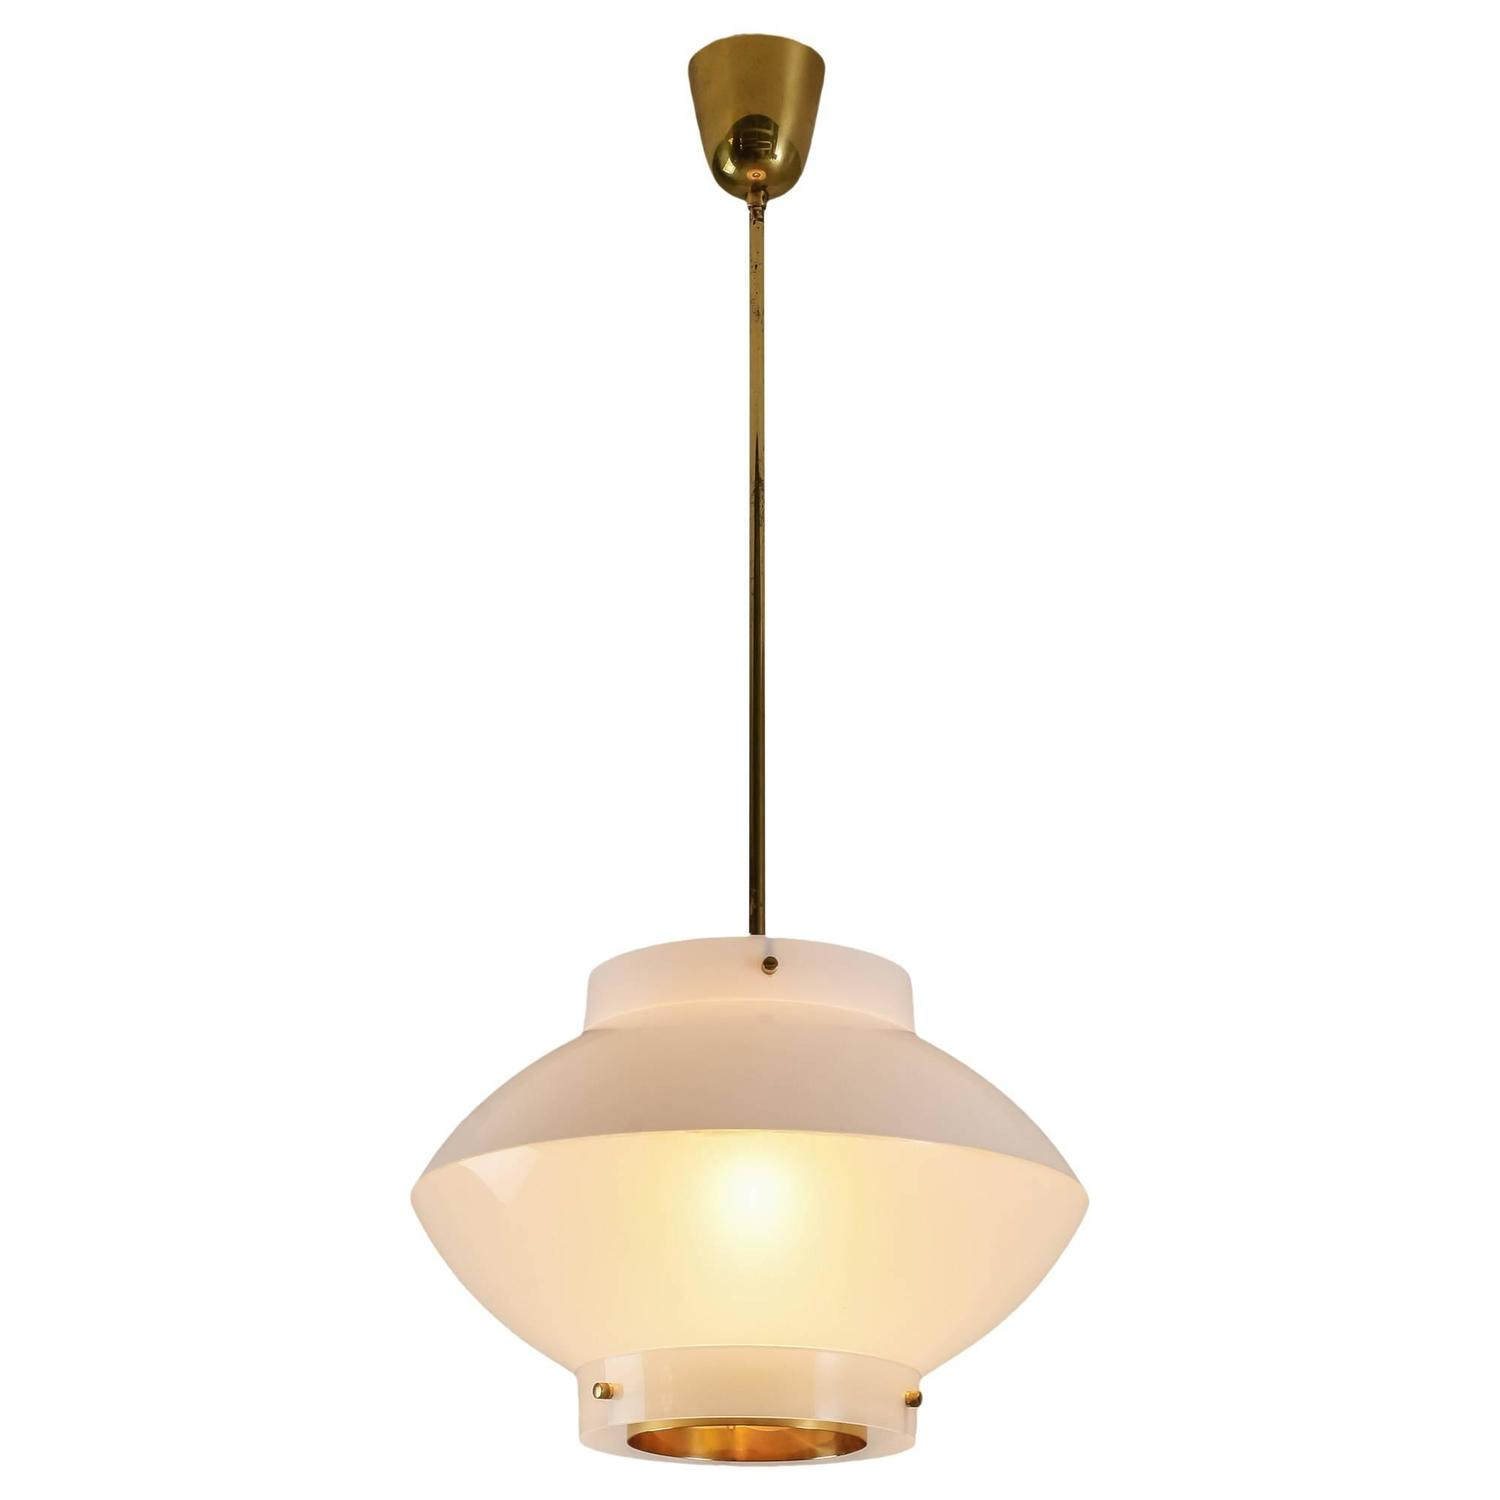 guidetti faceted crippa glass for brass pia with pendant by palainco lumi shop diamant